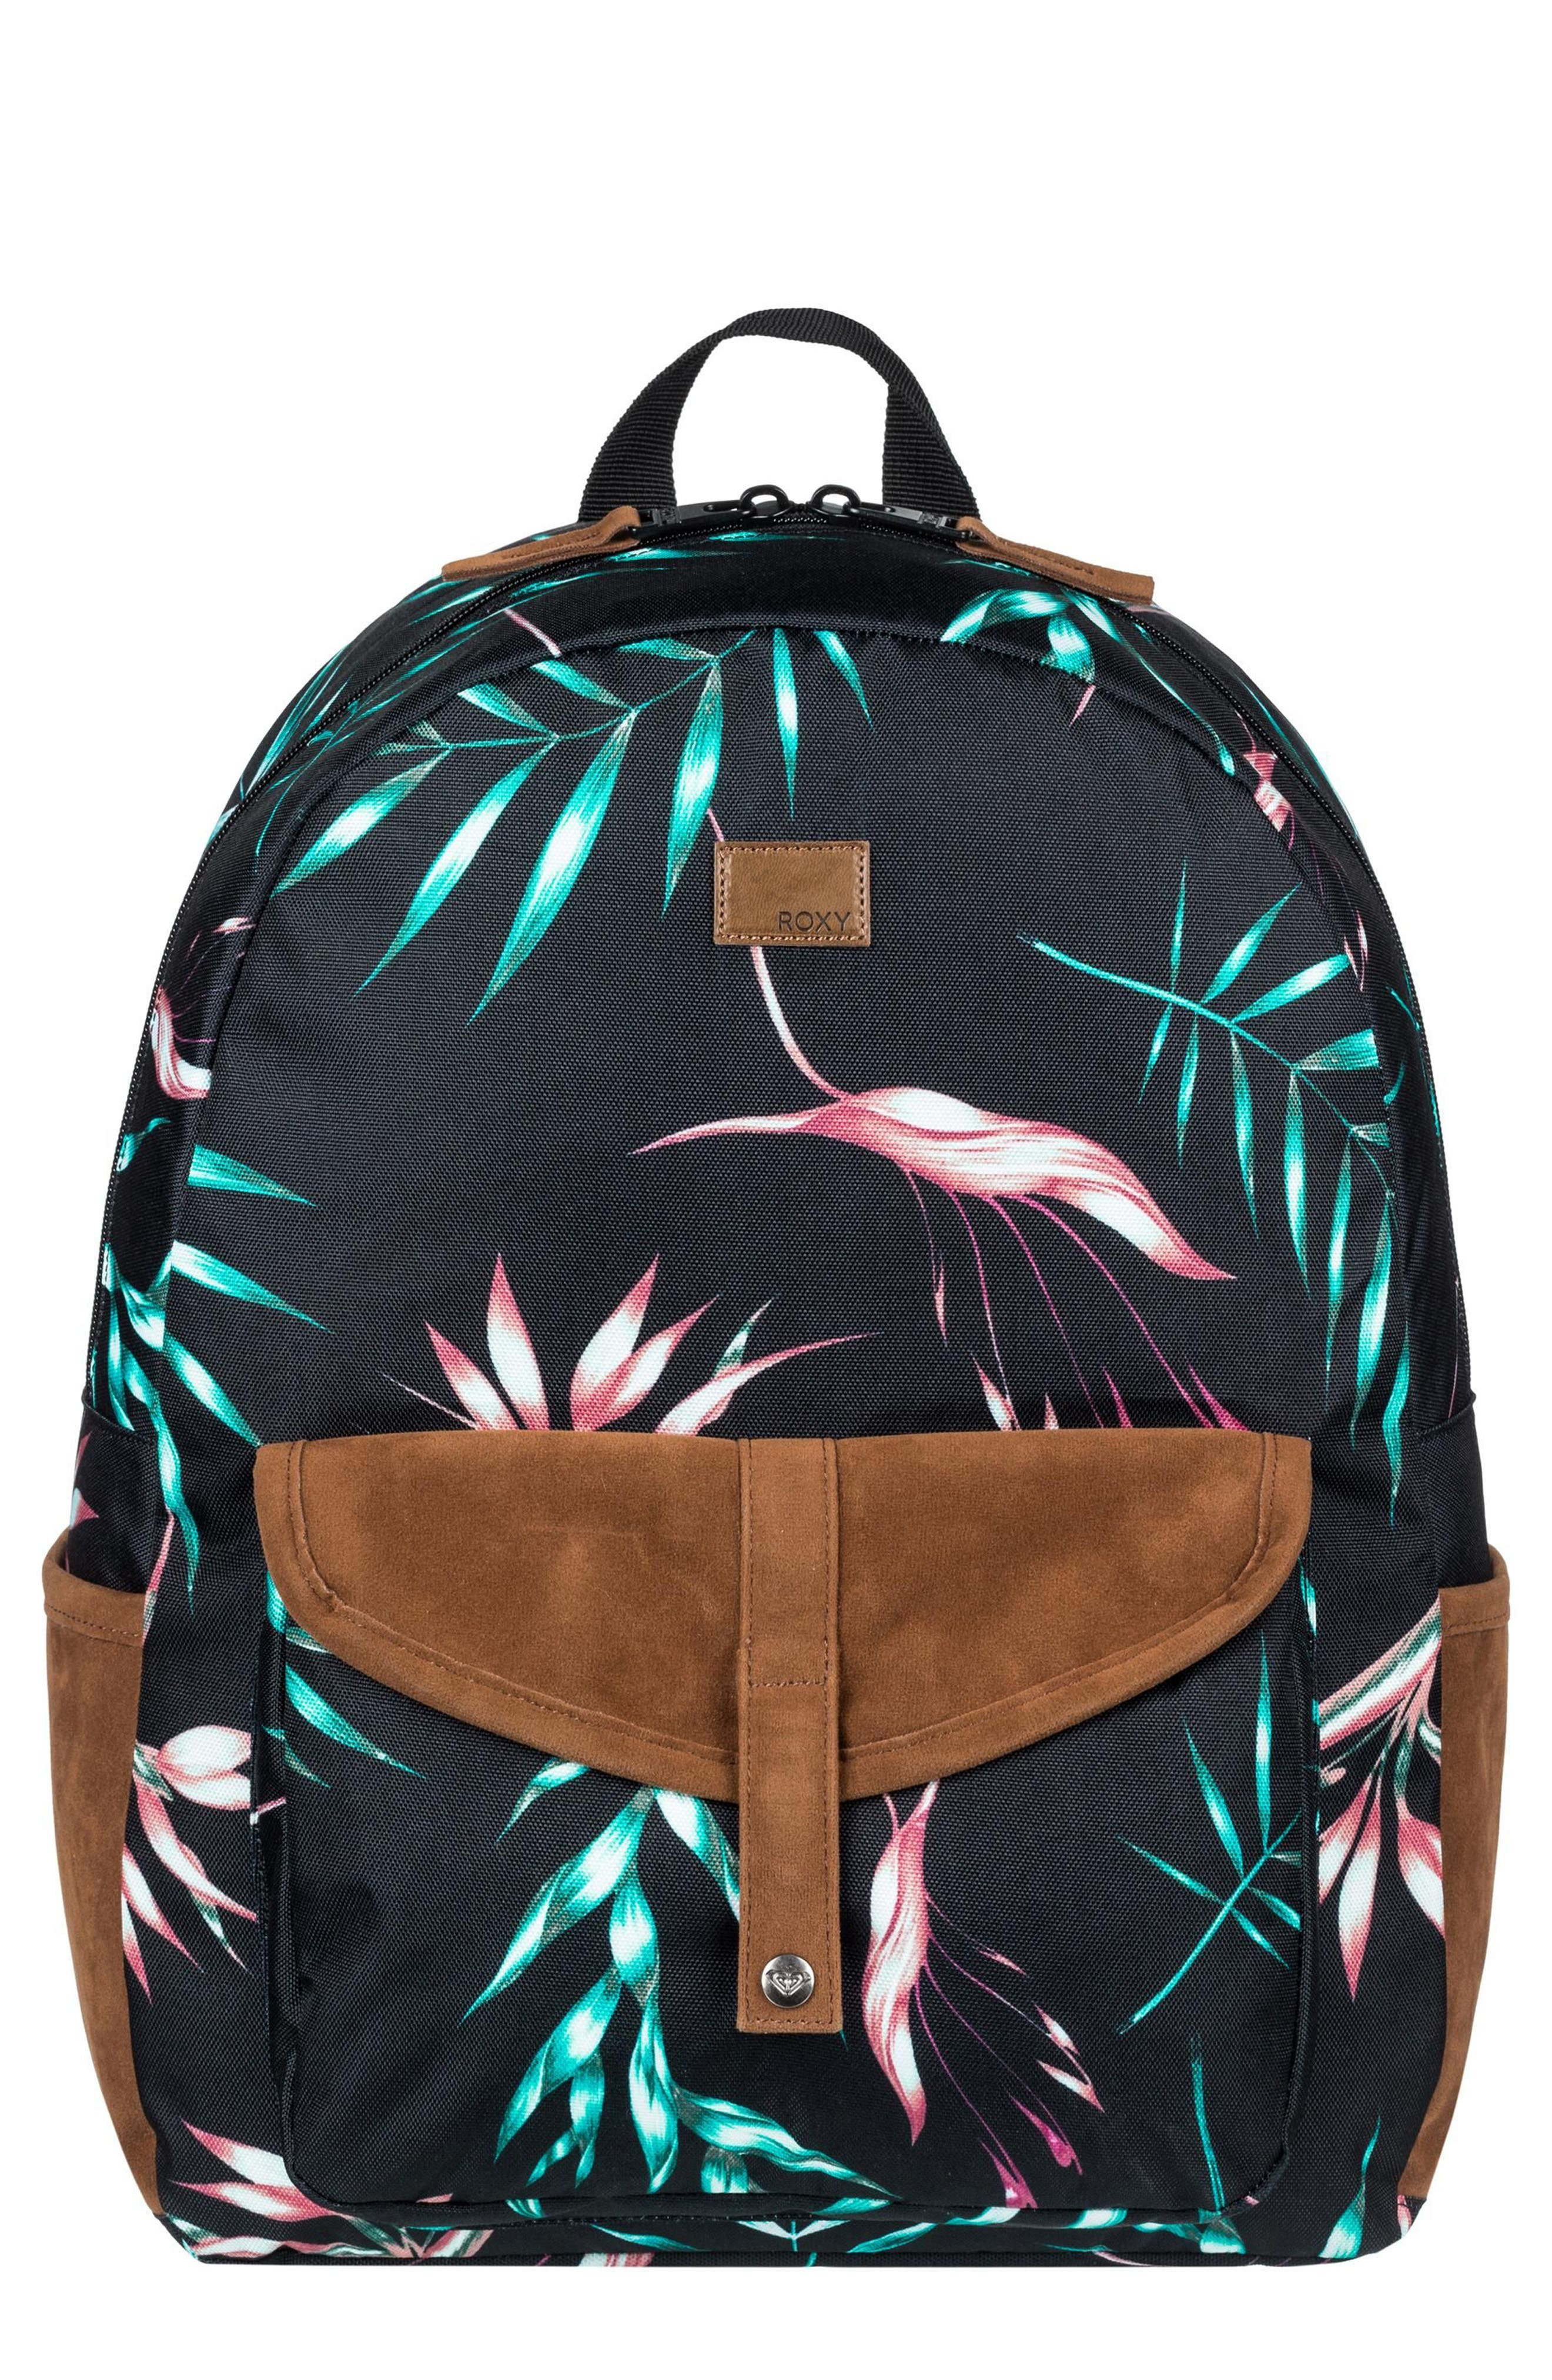 Caribbean Backpack,                             Main thumbnail 1, color,                             Anthracite Stormy Flowers